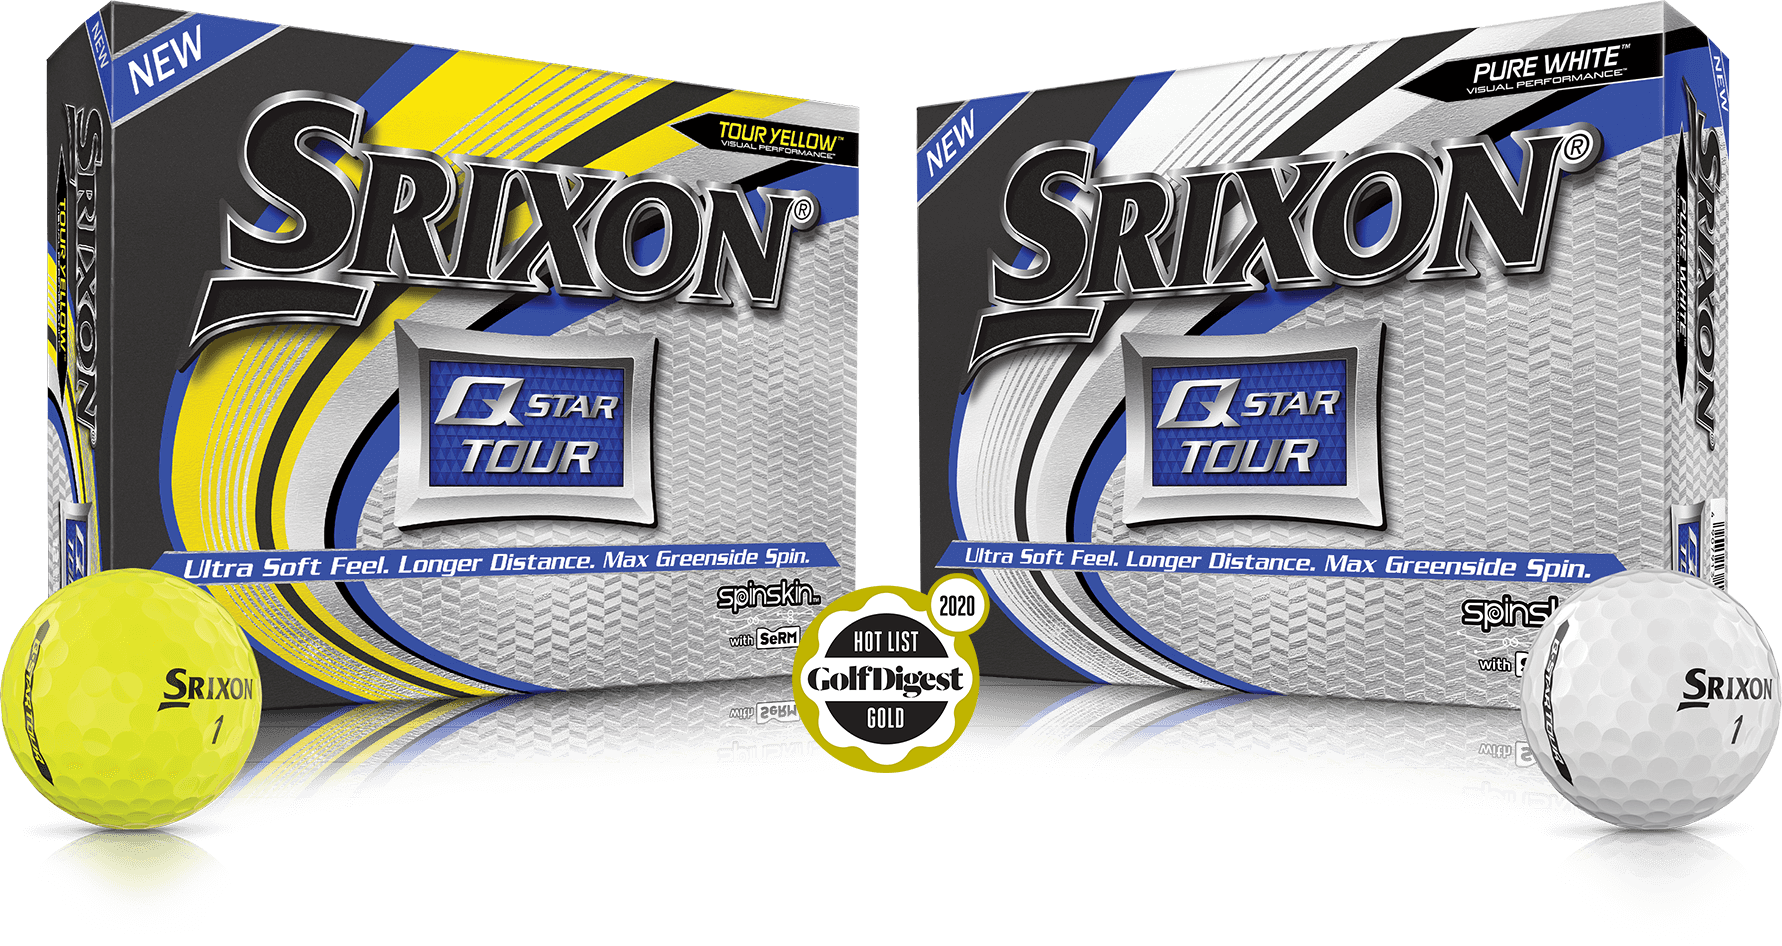 Q-STAR TOUR 3 Package